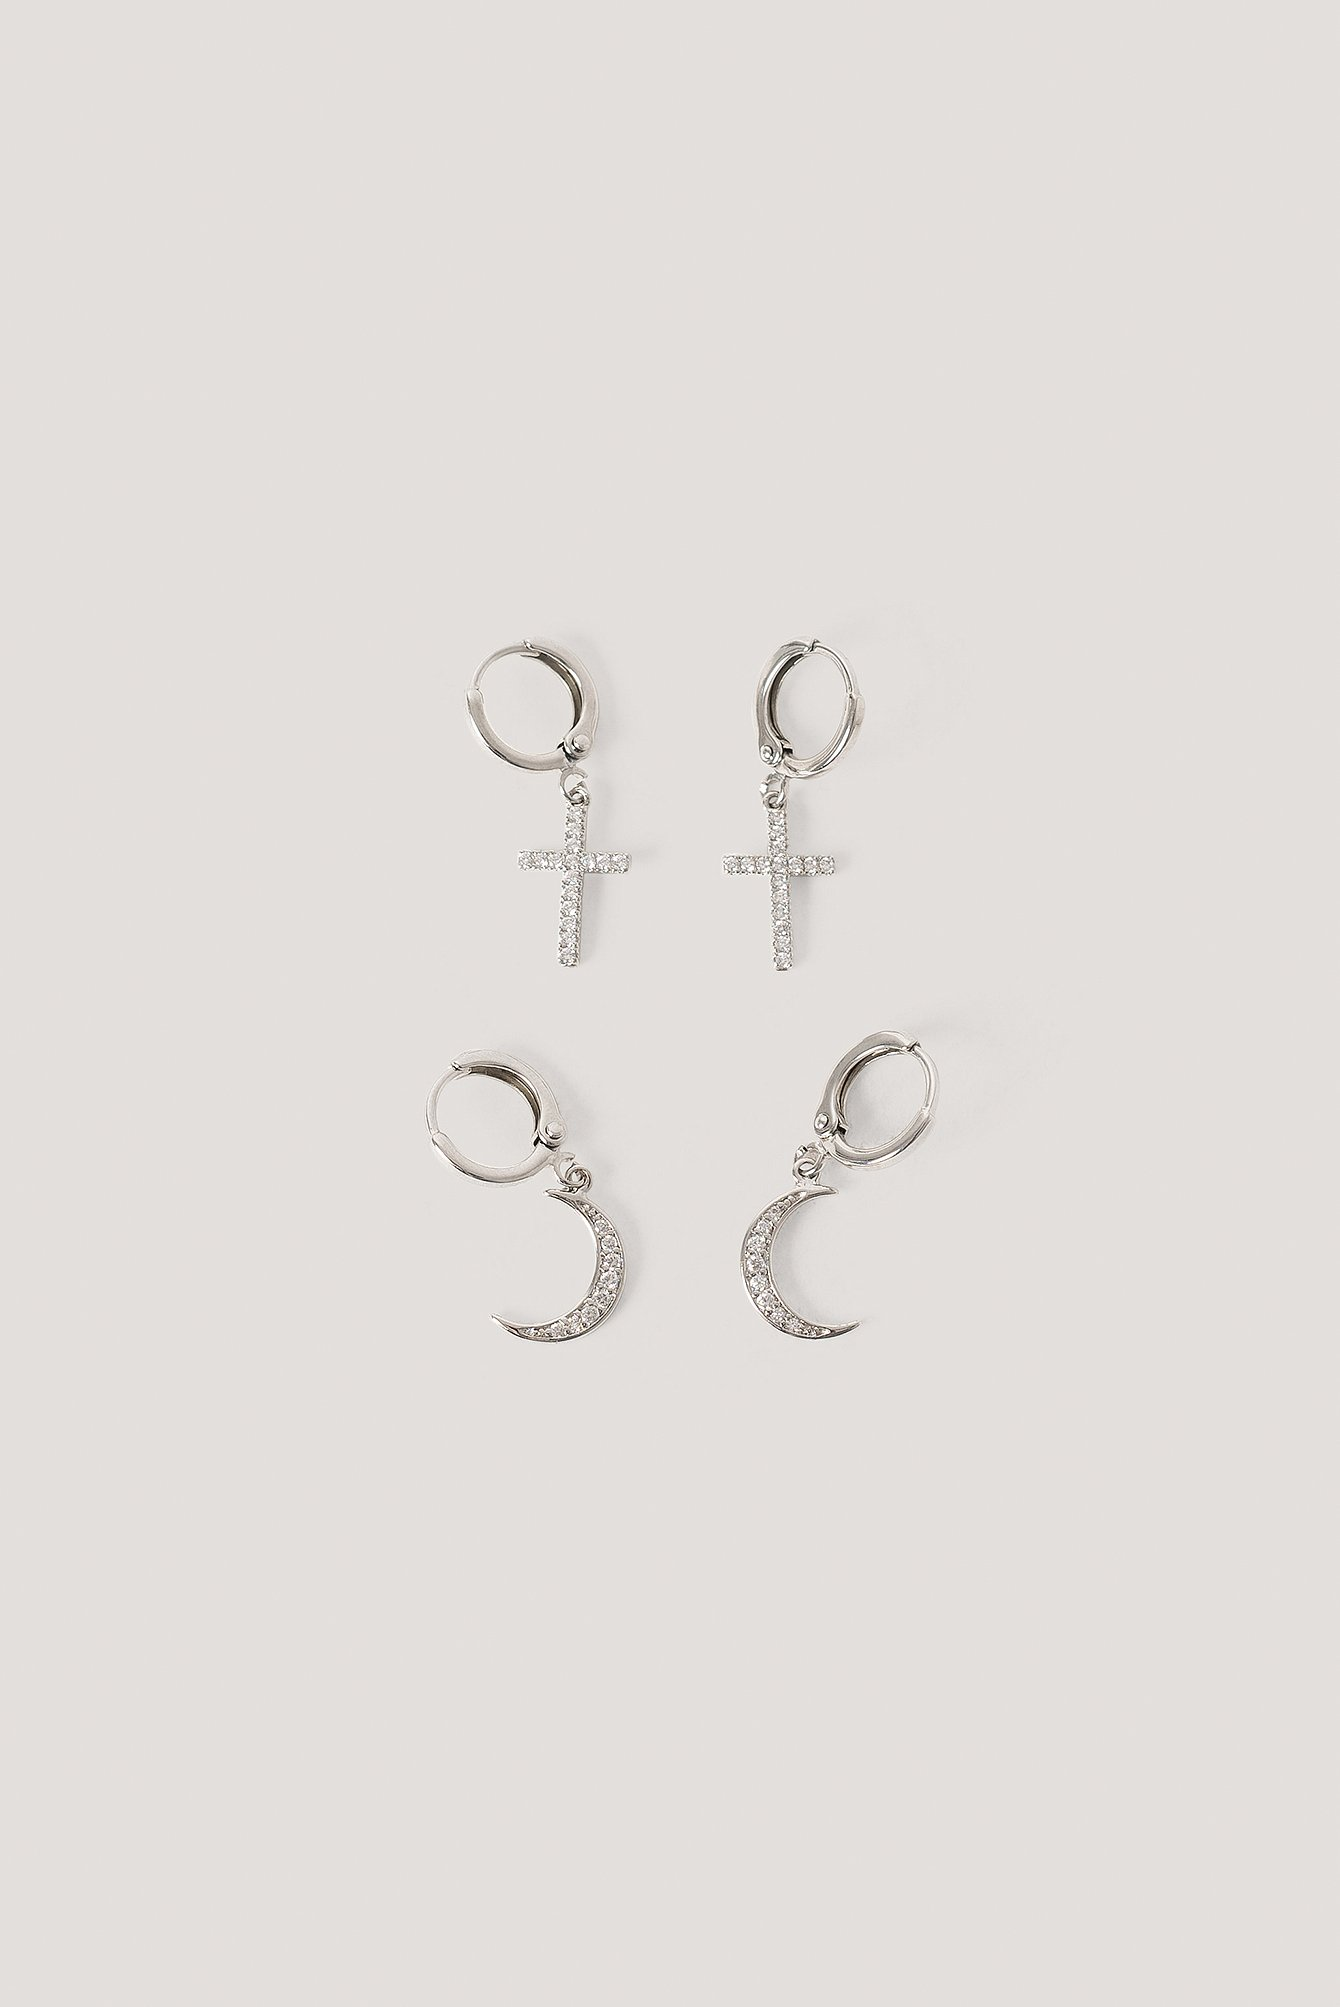 Silver Moon Cross Earrings